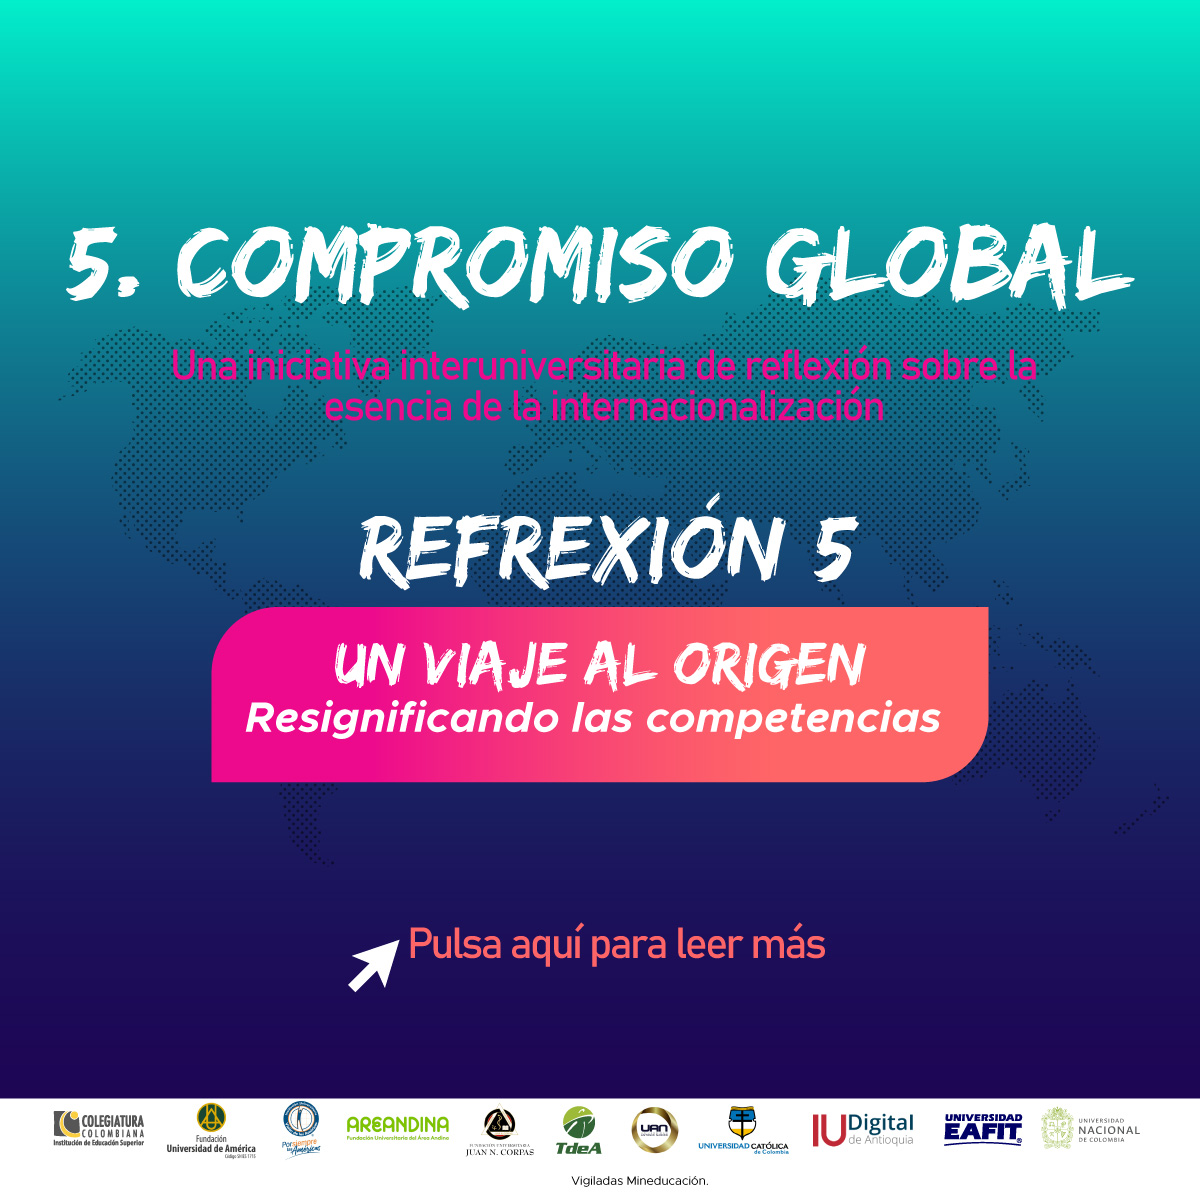 5. Compromiso Global